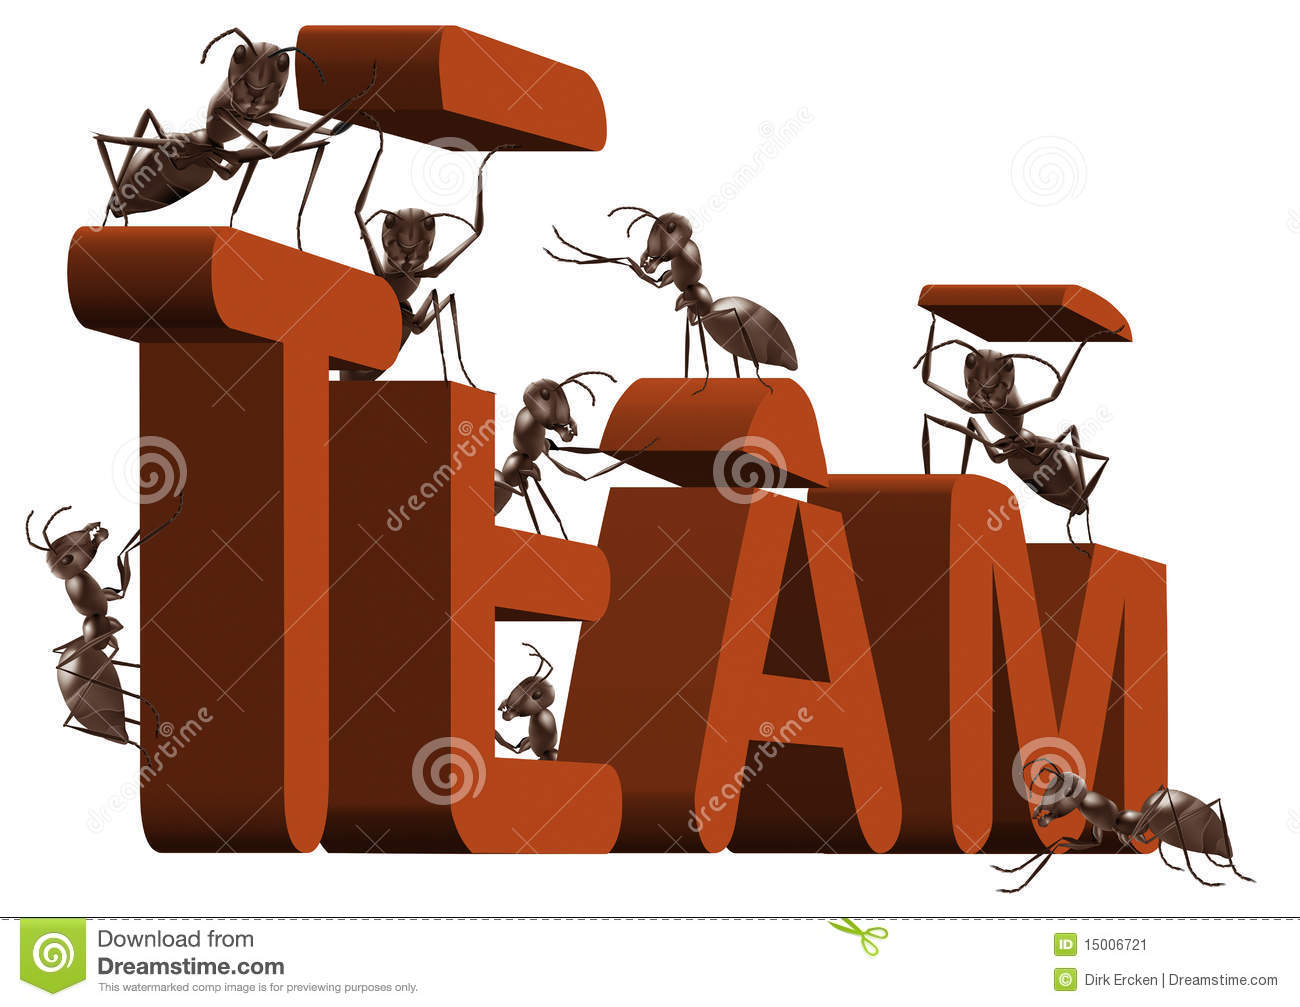 Ant teamwork team building or work cooperation